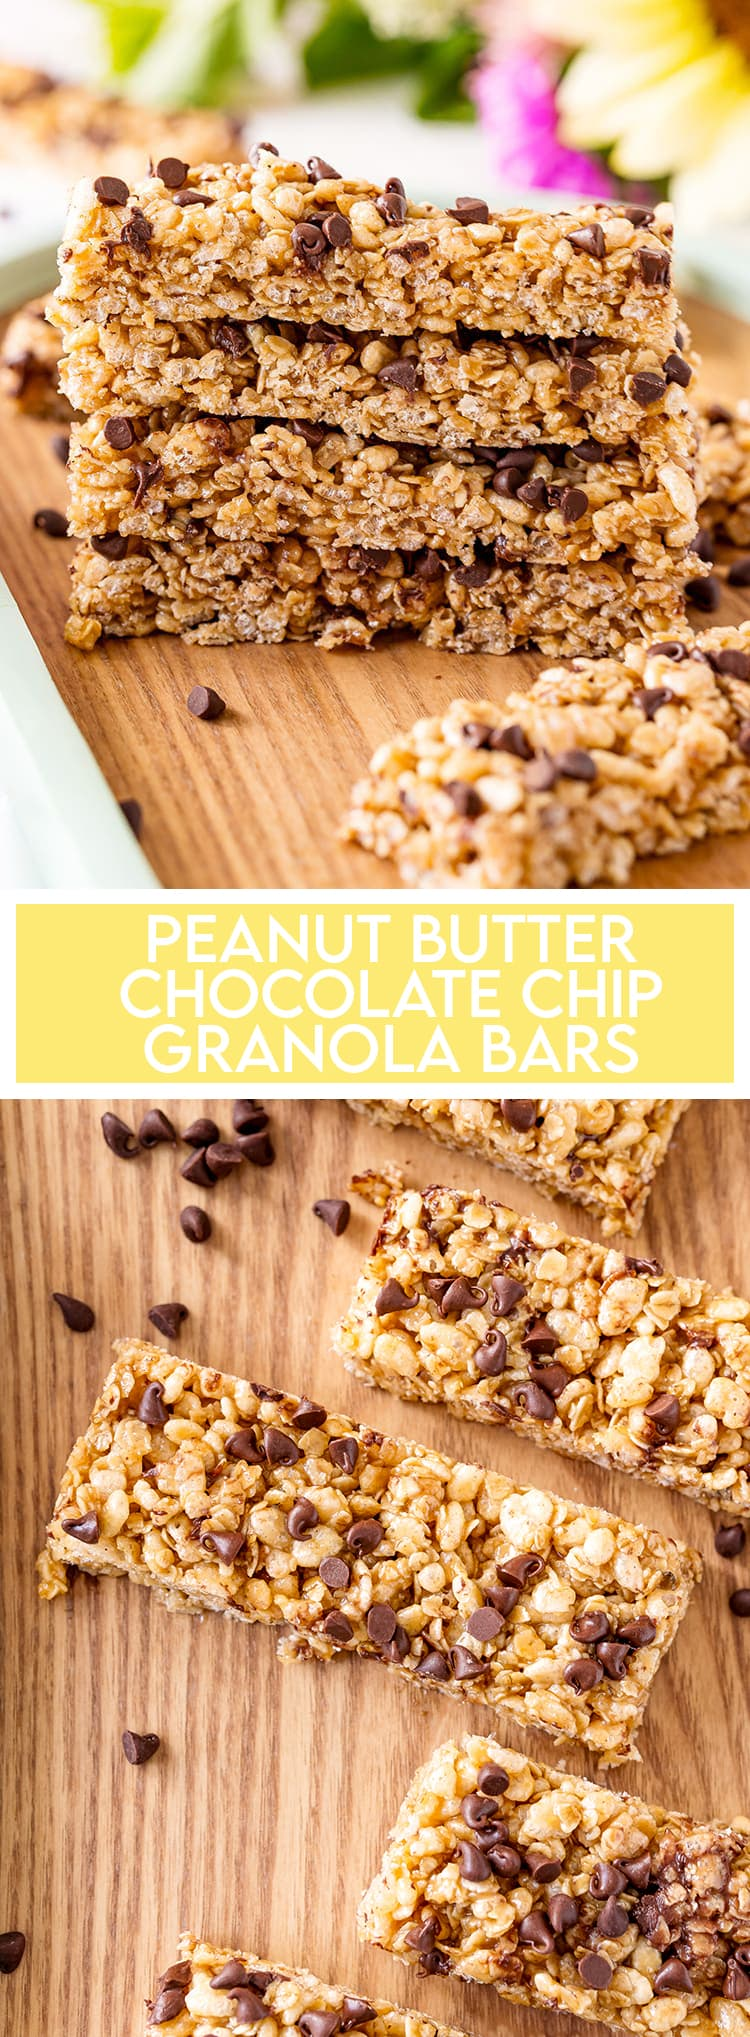 A stack of peanut butter chocolate chip granola bars with text overlay for pinterest, with another photo below of the bars on a wooden tray.